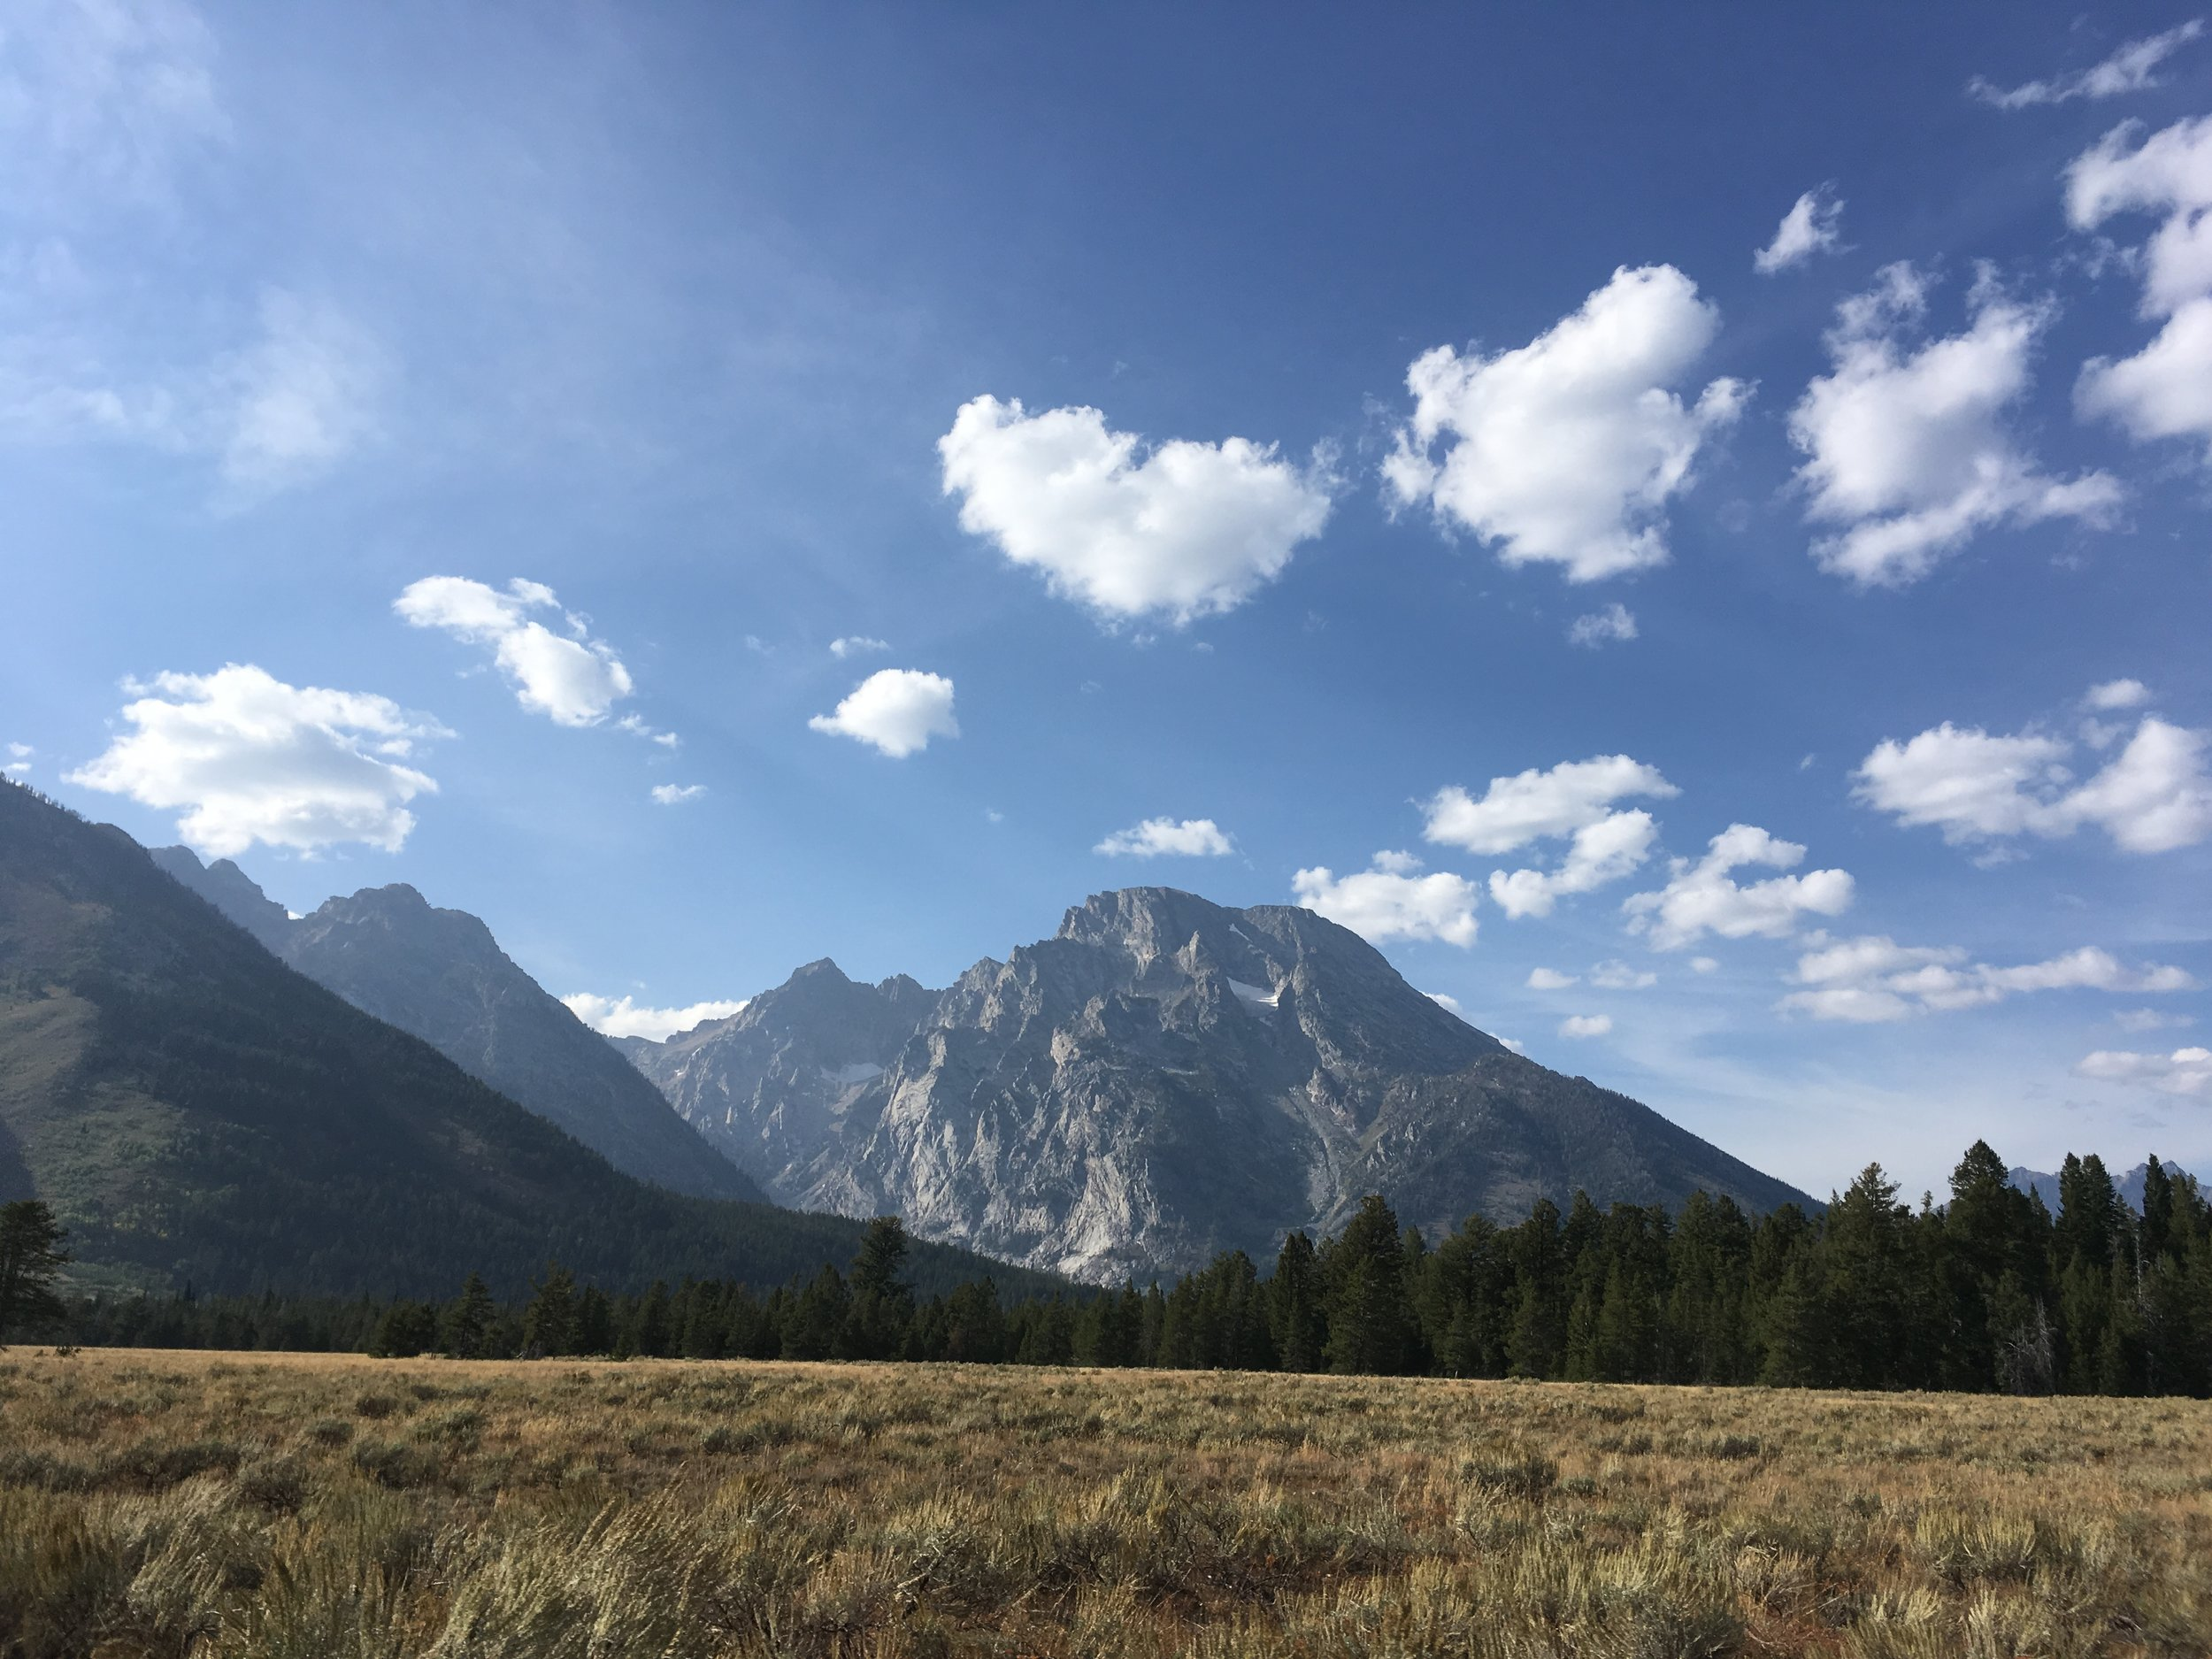 one last look at the Tetons on our way home